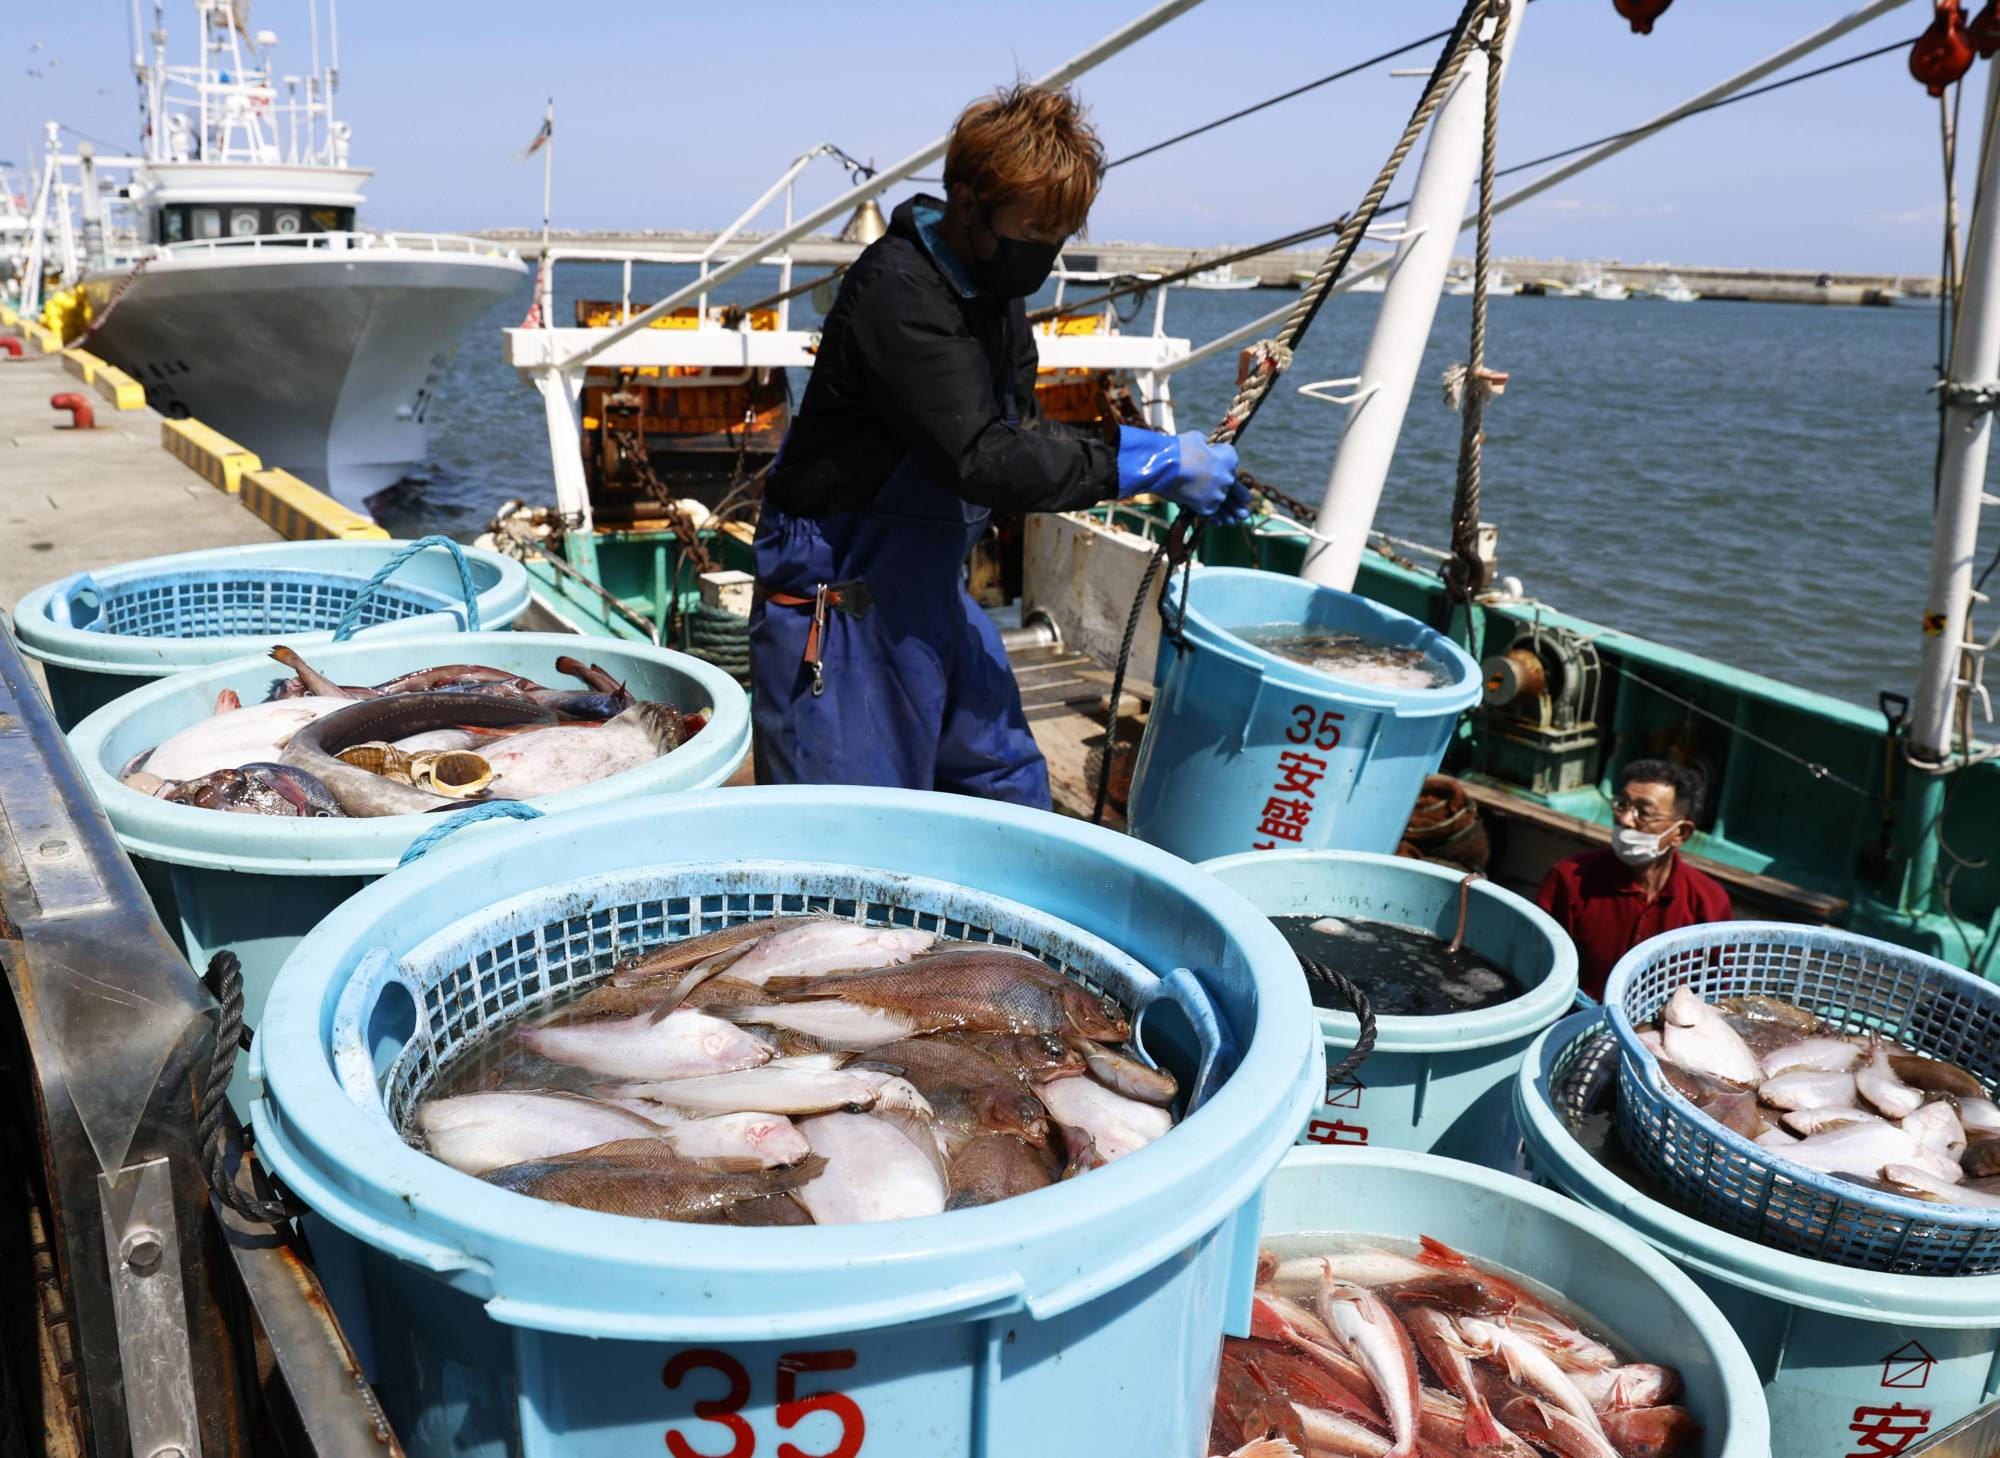 The government has said it will buy Fukushima seafood that is left unsold following the release of treated radioactive water from the stricken Fukushima No. 1 nuclear power plant. | KYODO